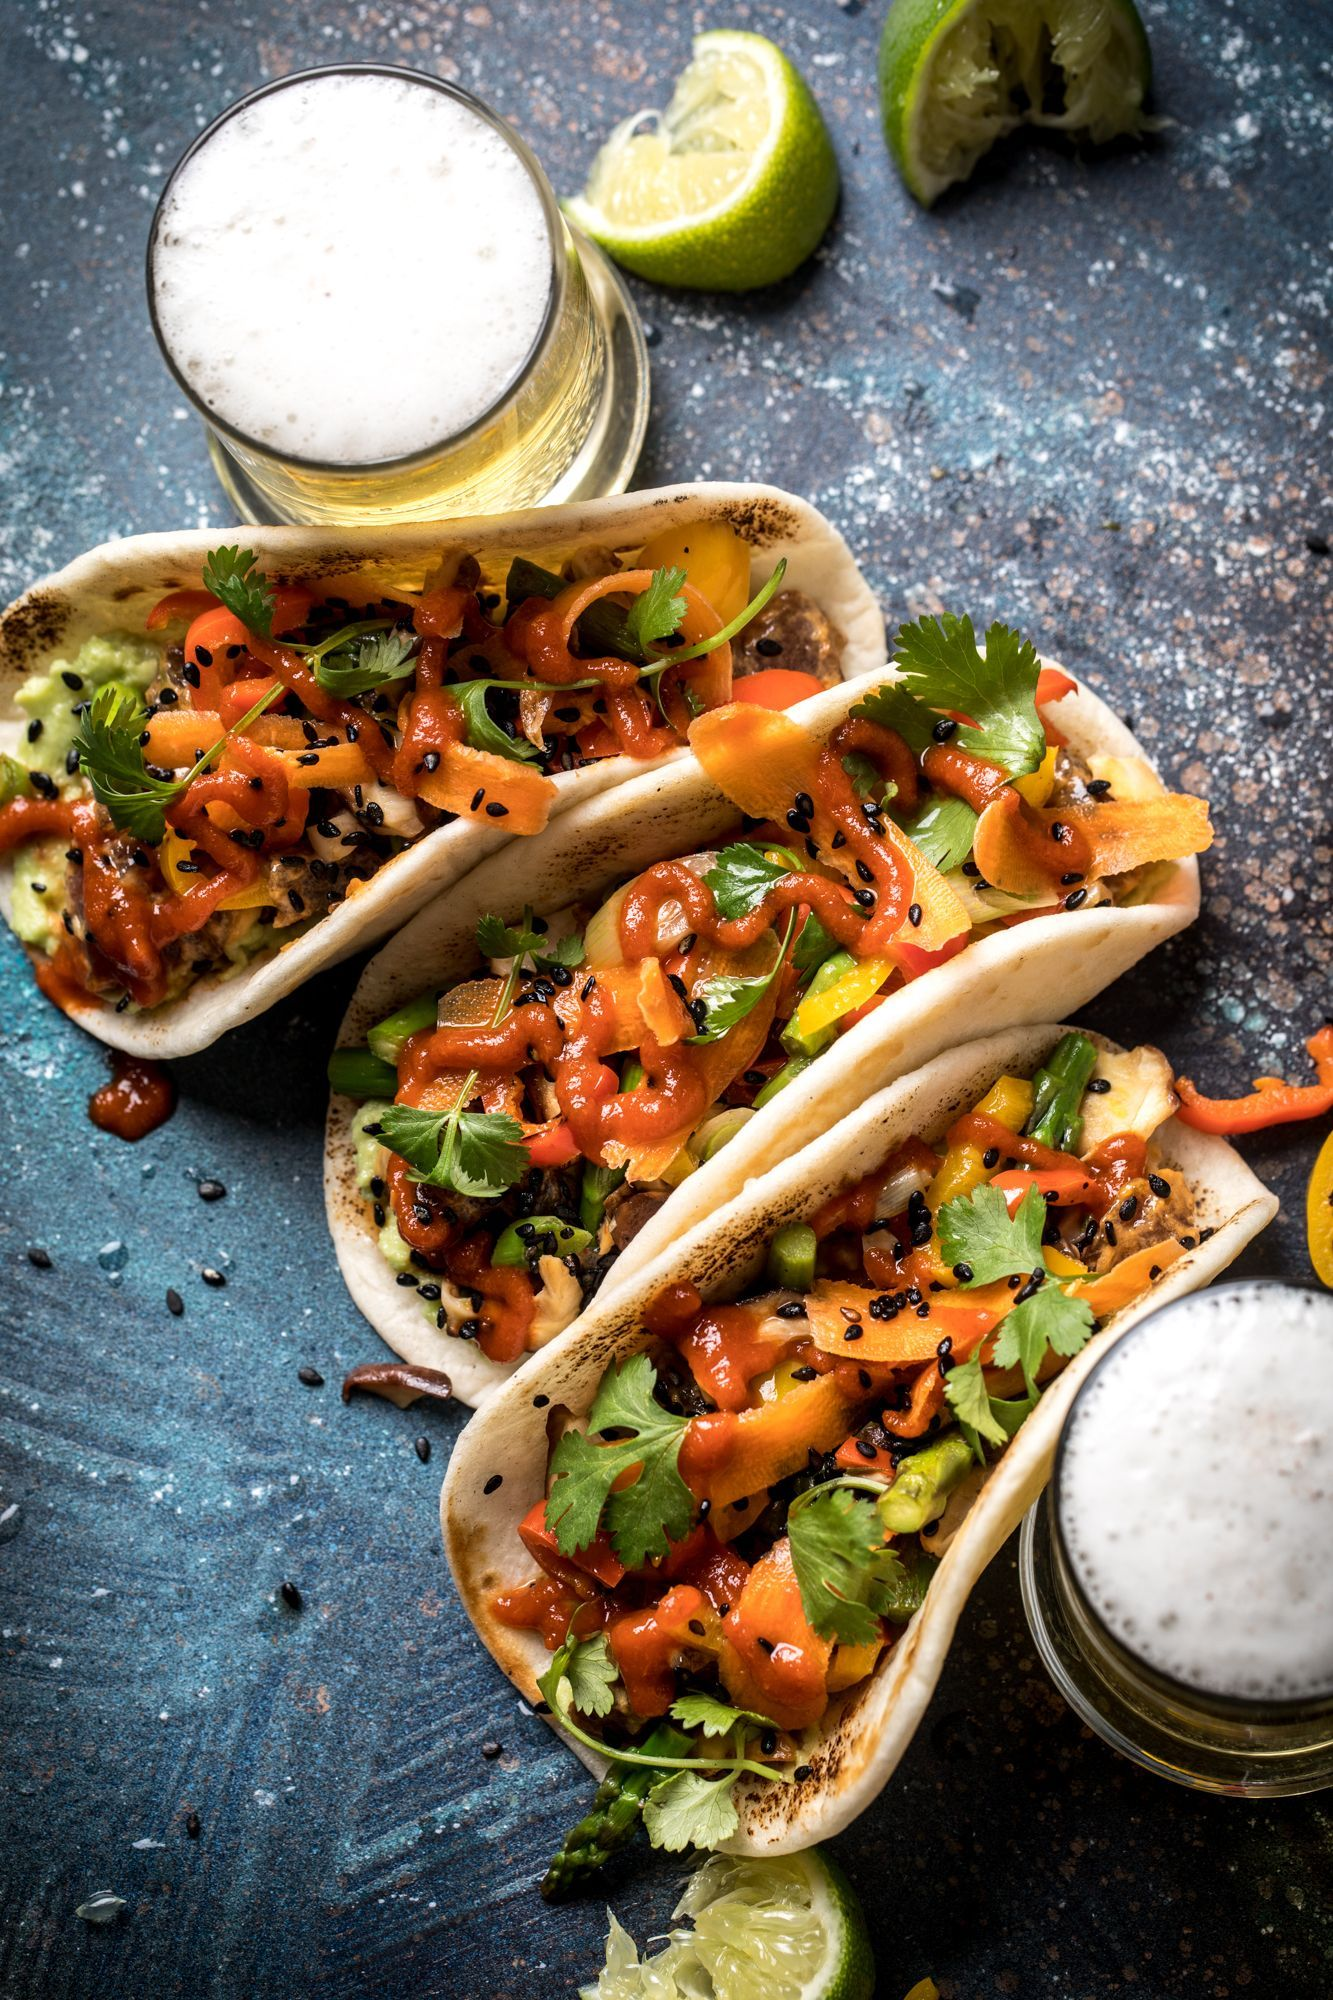 Poke Tacos with Beer - Food Photography OverheadTuna Poke Tacos with Beer - Food Photography Overhead